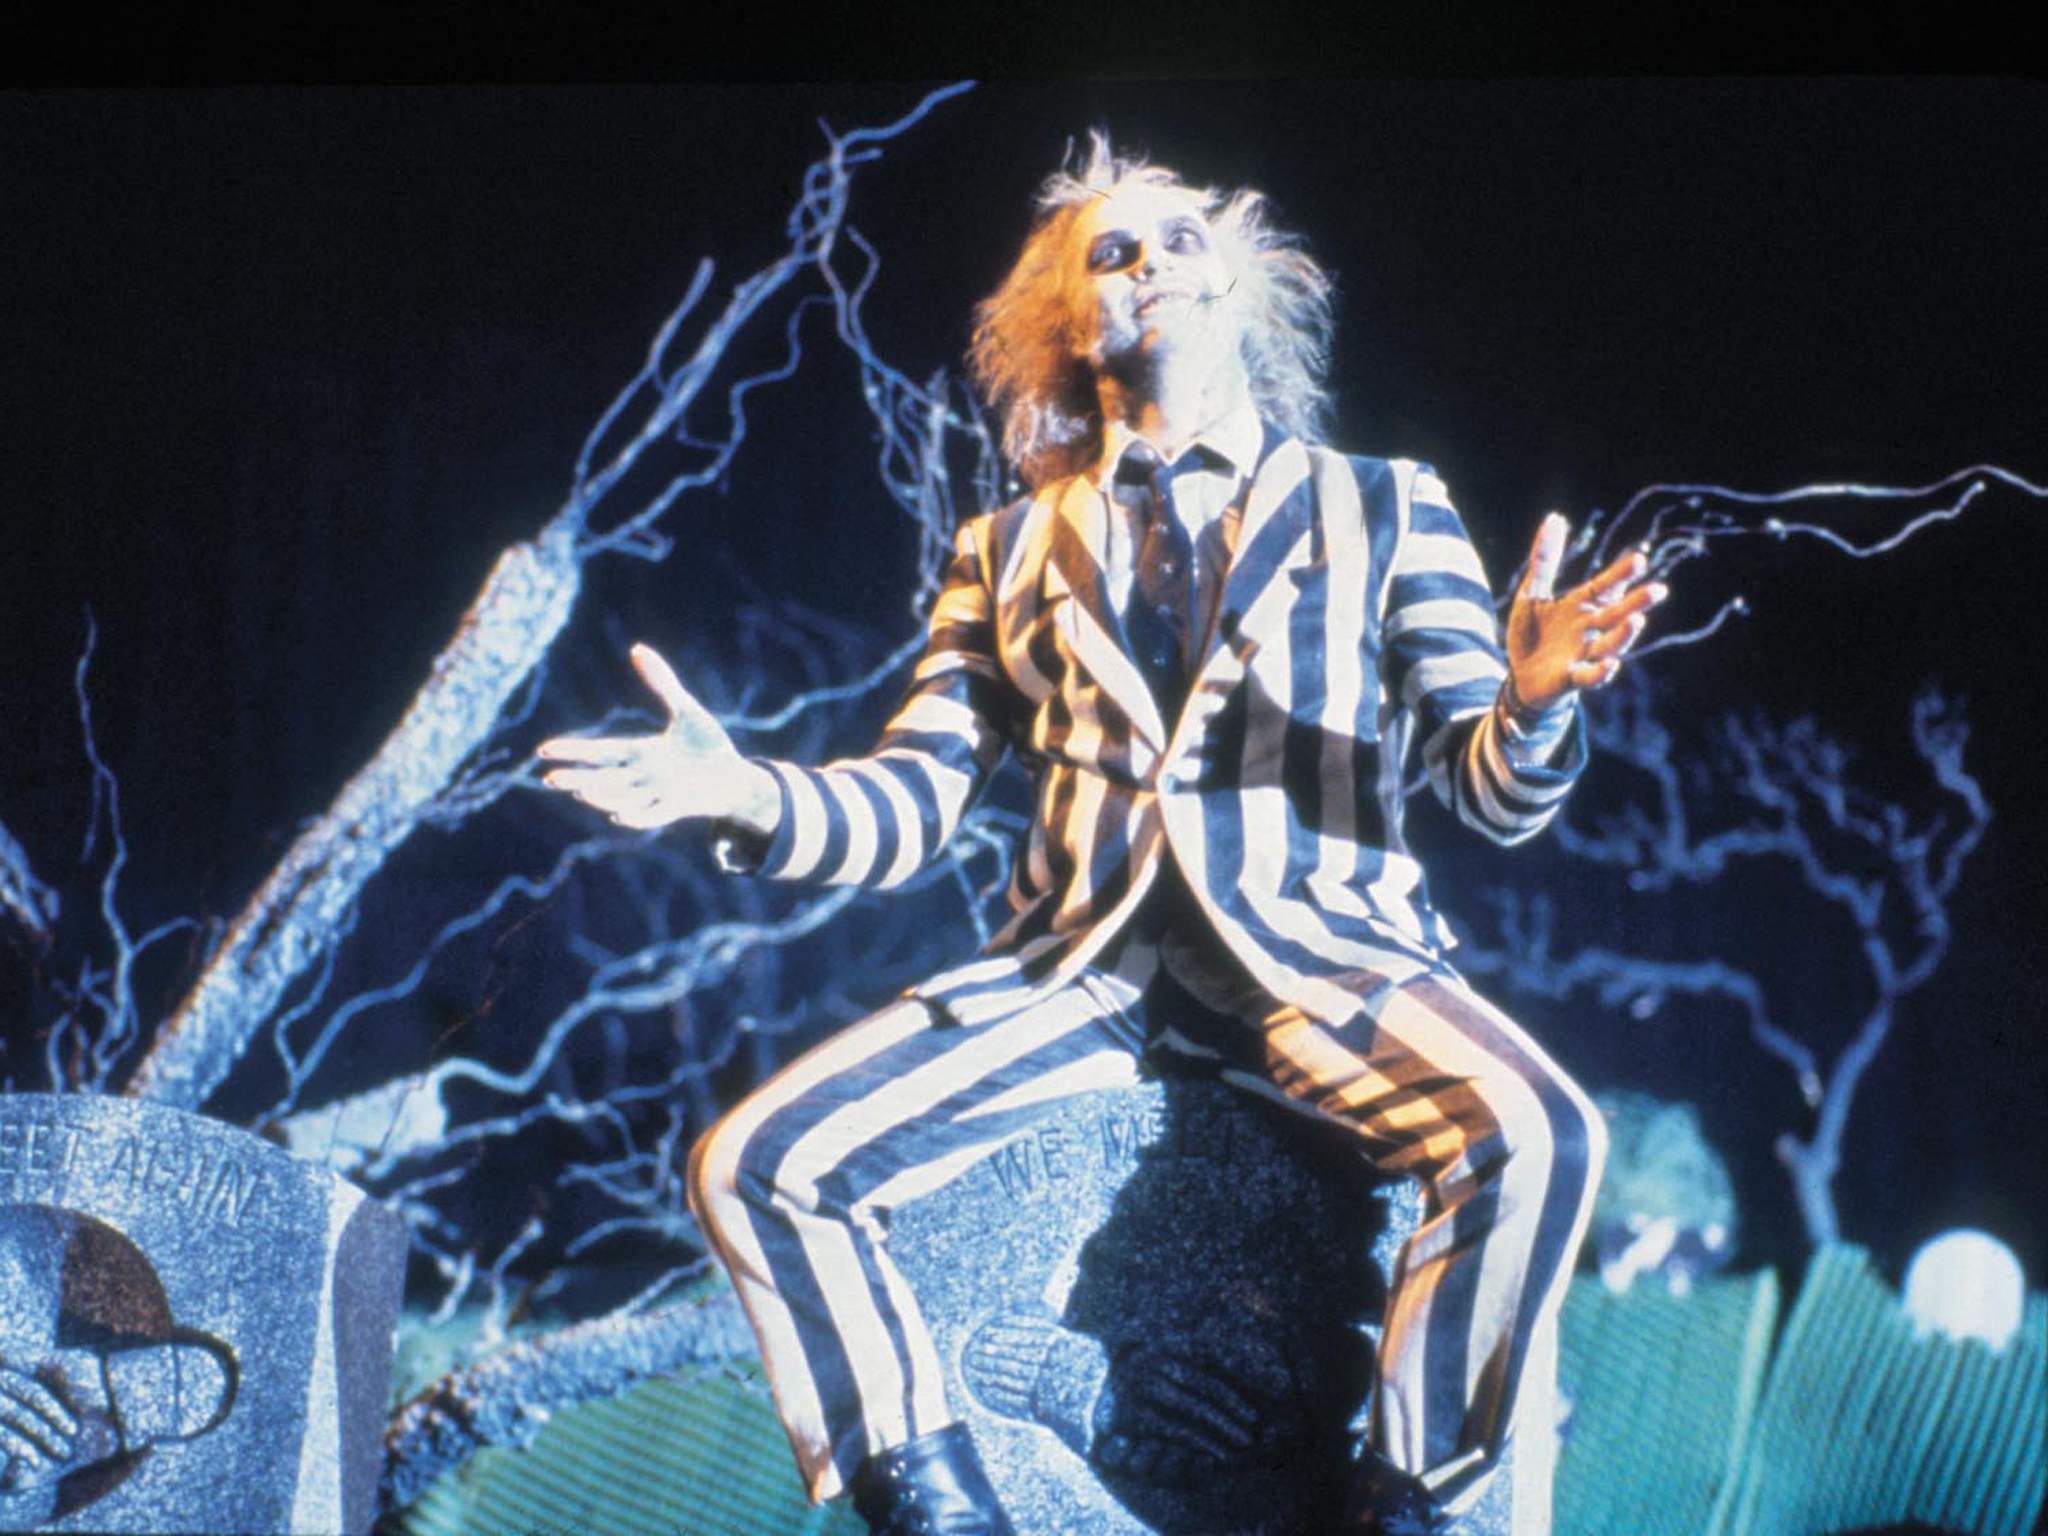 films for halloween costume ideas, beetlejuice